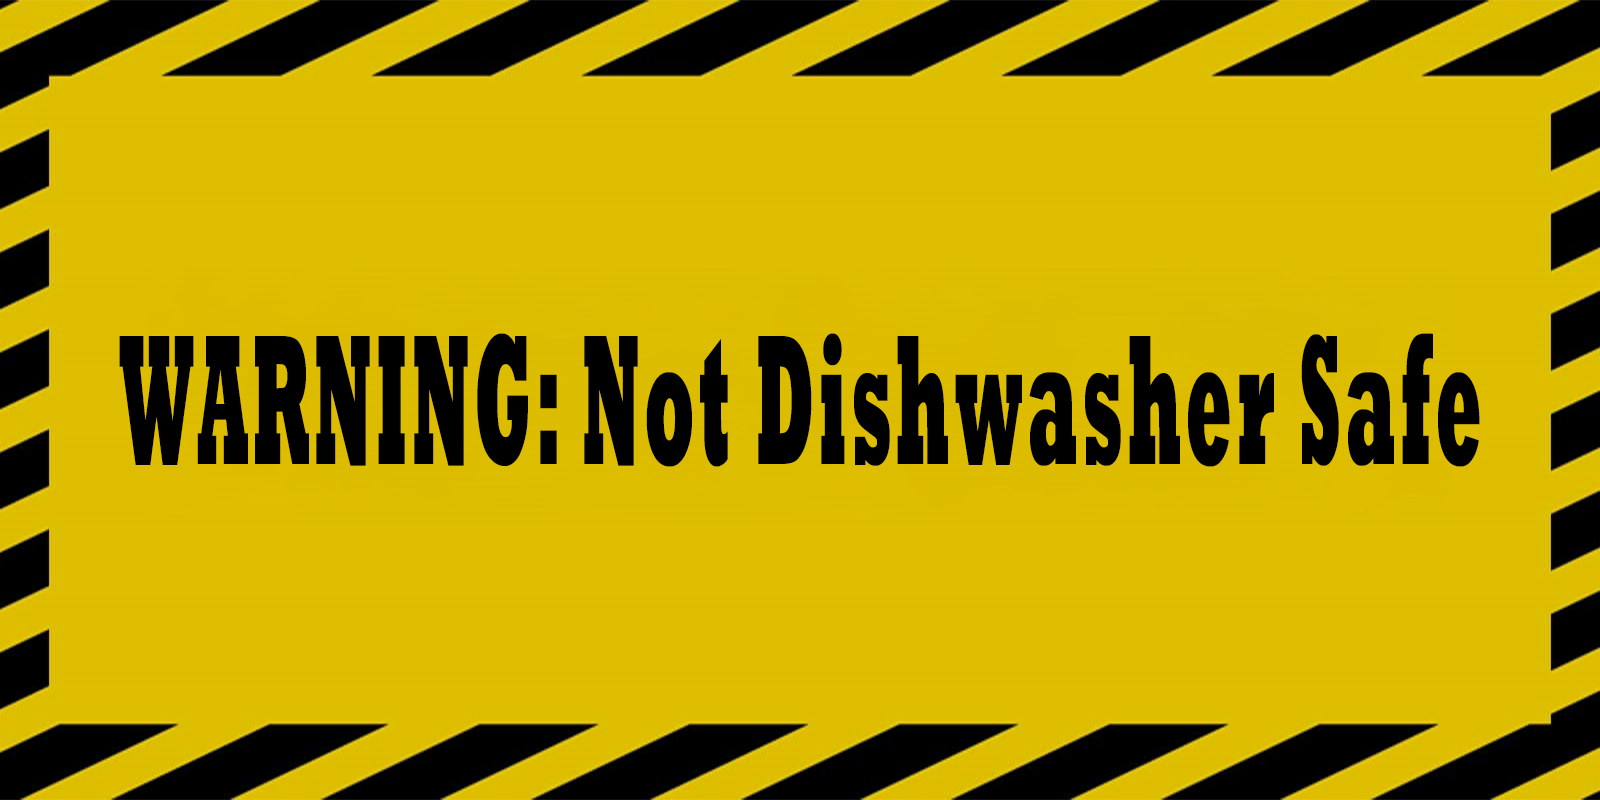 Warning: Not dishwasher safe